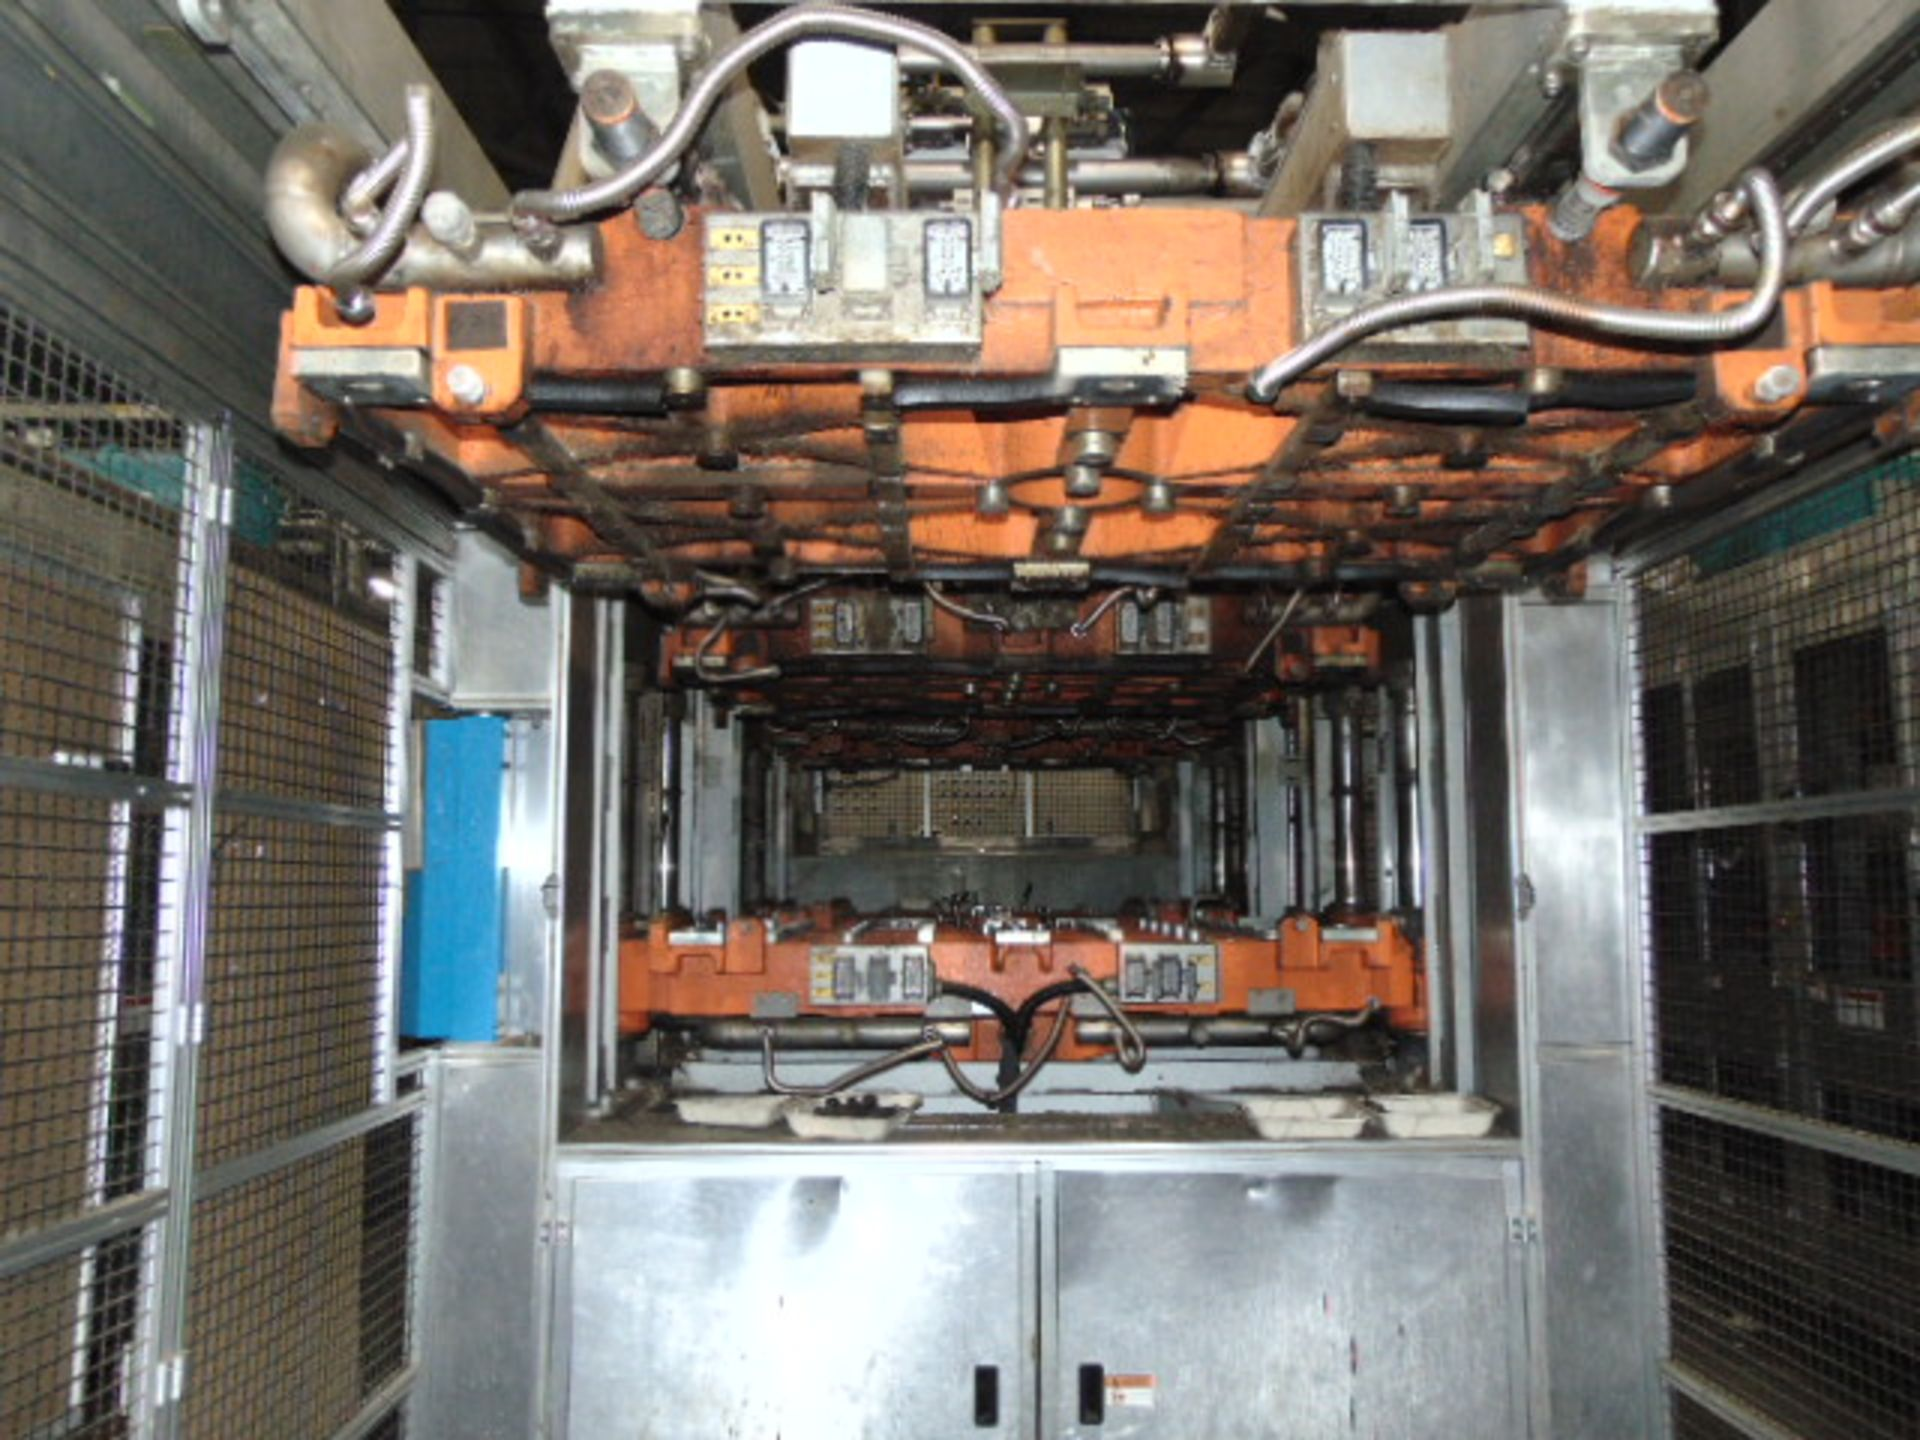 THERMOFORMING MACHINE, TAIWAN PULP MOLDING MDL. TPM-1500, mfg. 5/2015, installed 2016, 1500mm x - Image 2 of 9